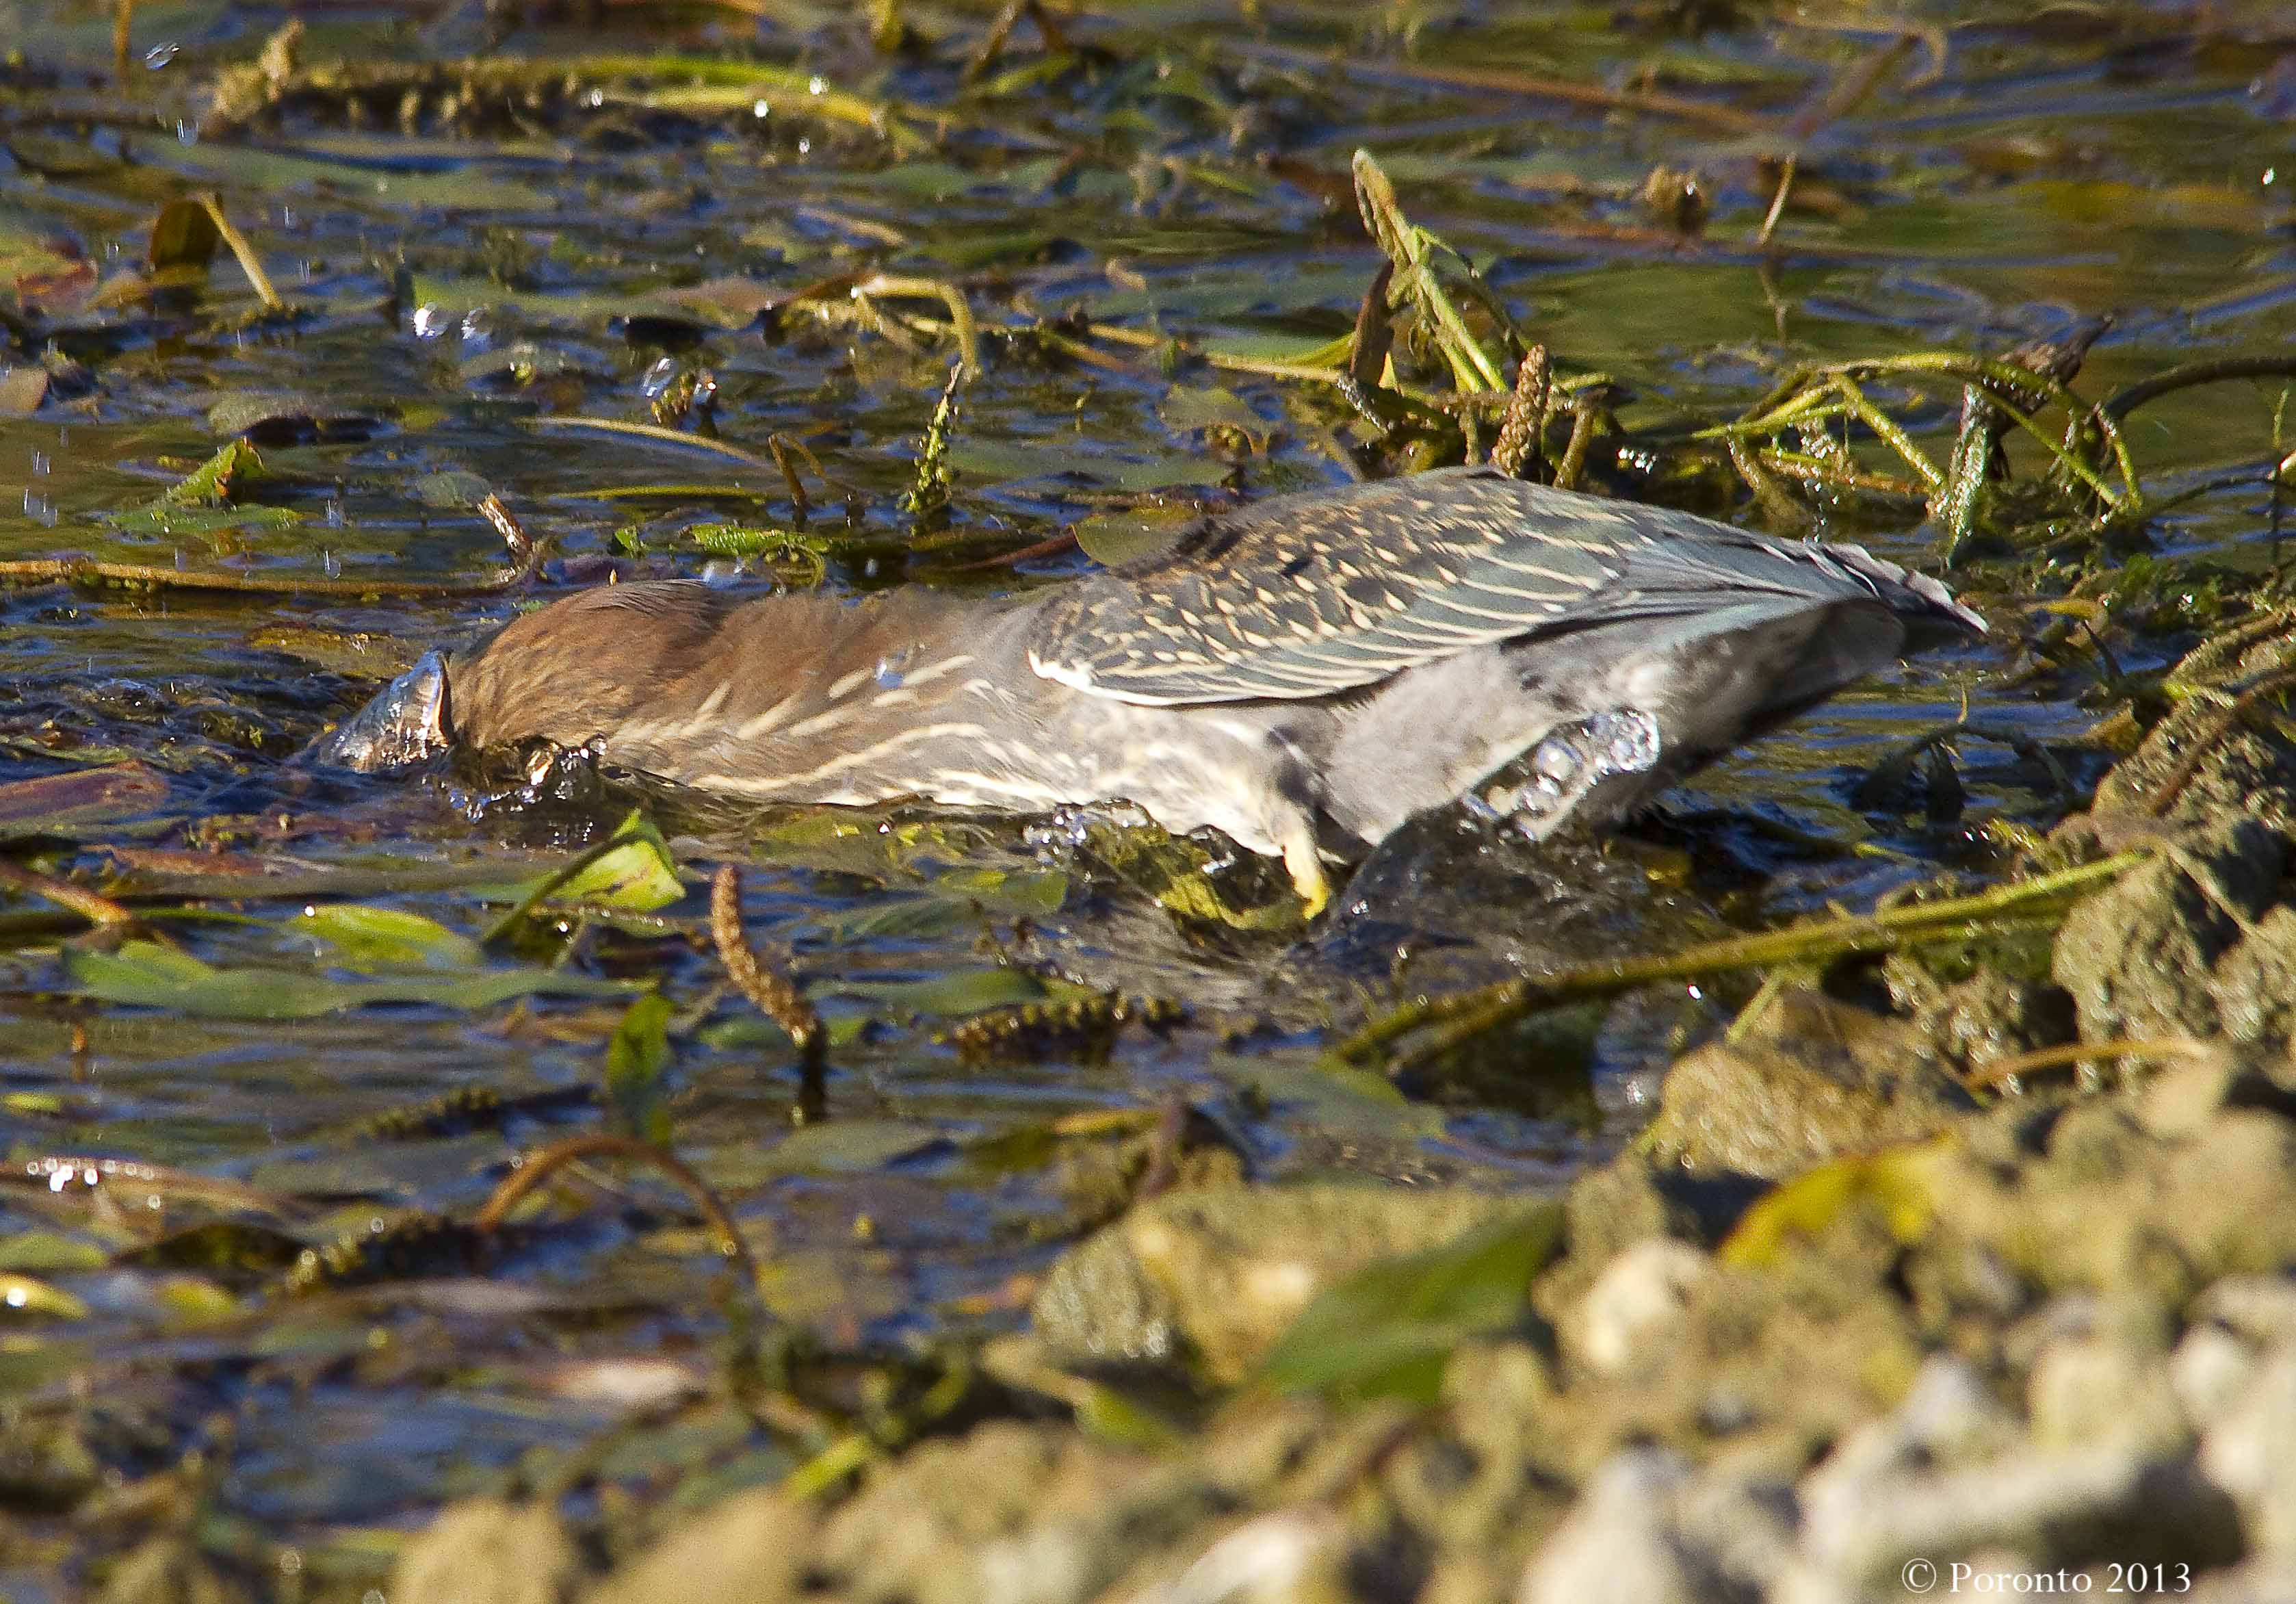 Green Heron caught right in the middle of his dive for a minnow